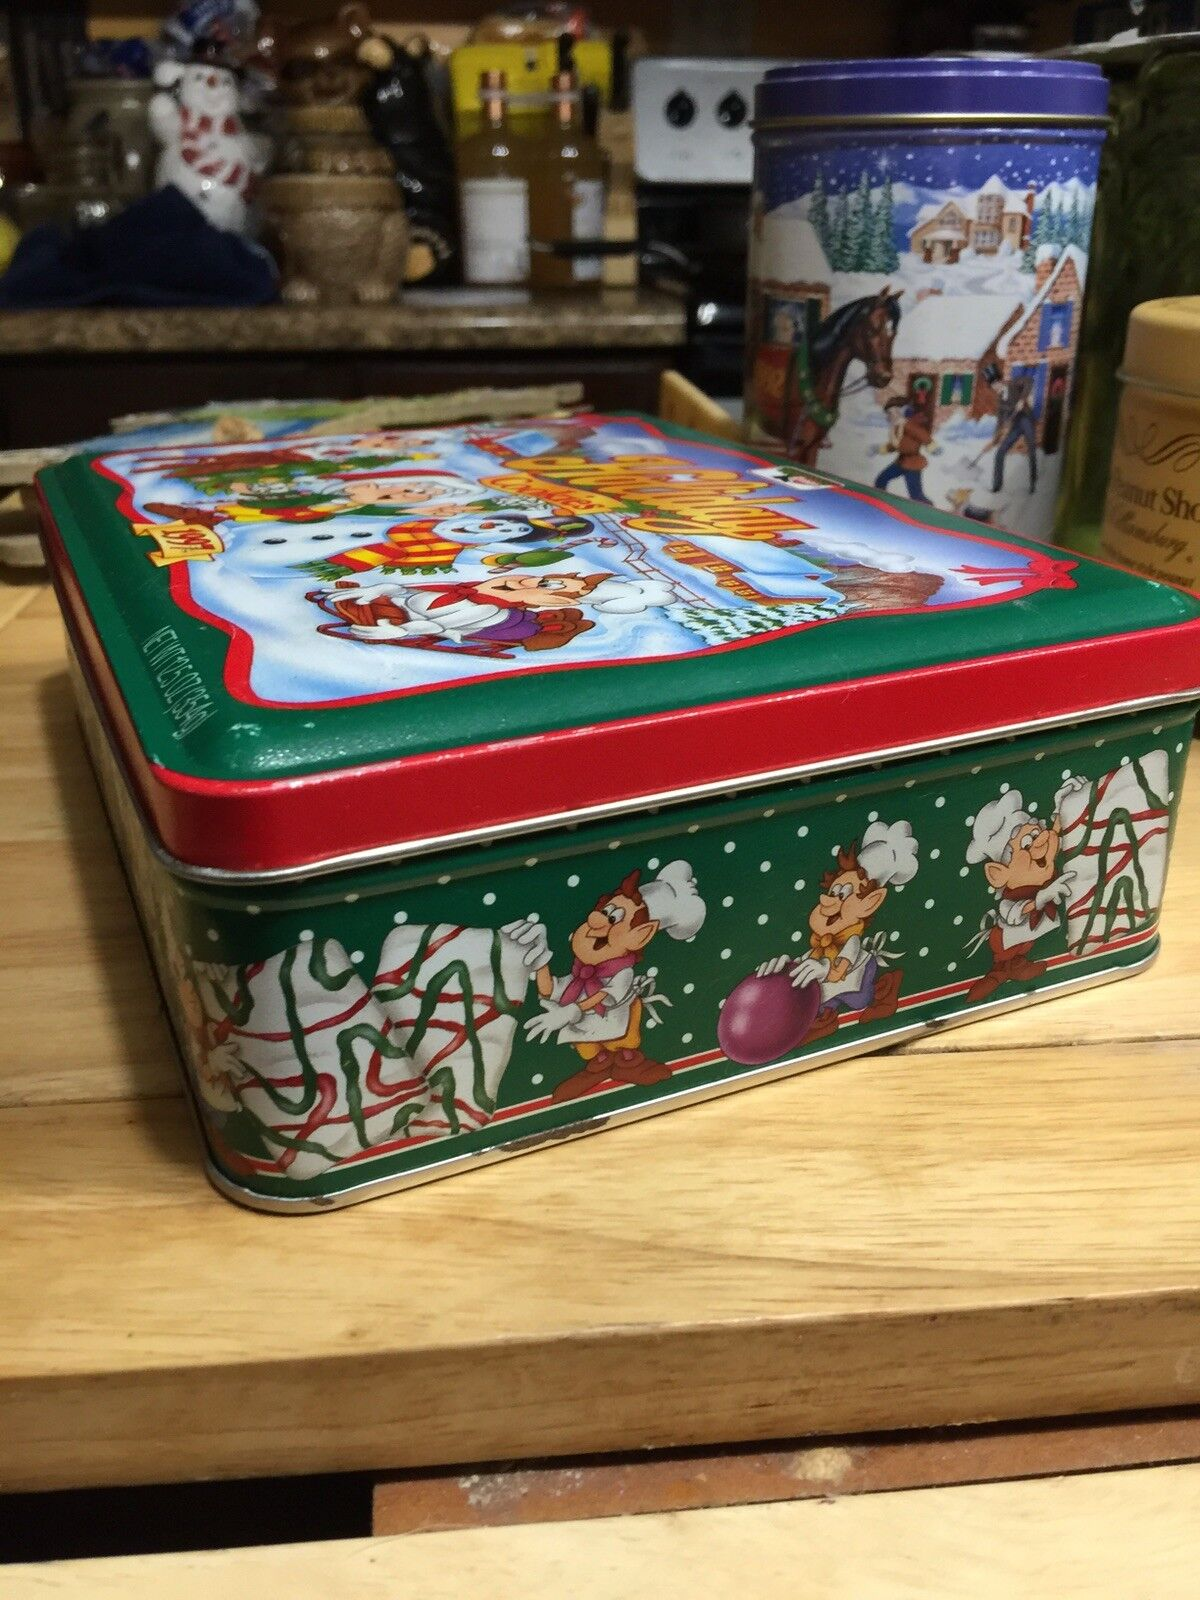 1997 KEEBLER ELVES Holiday Cookies Tin Christmas - $12.50 | PicClick